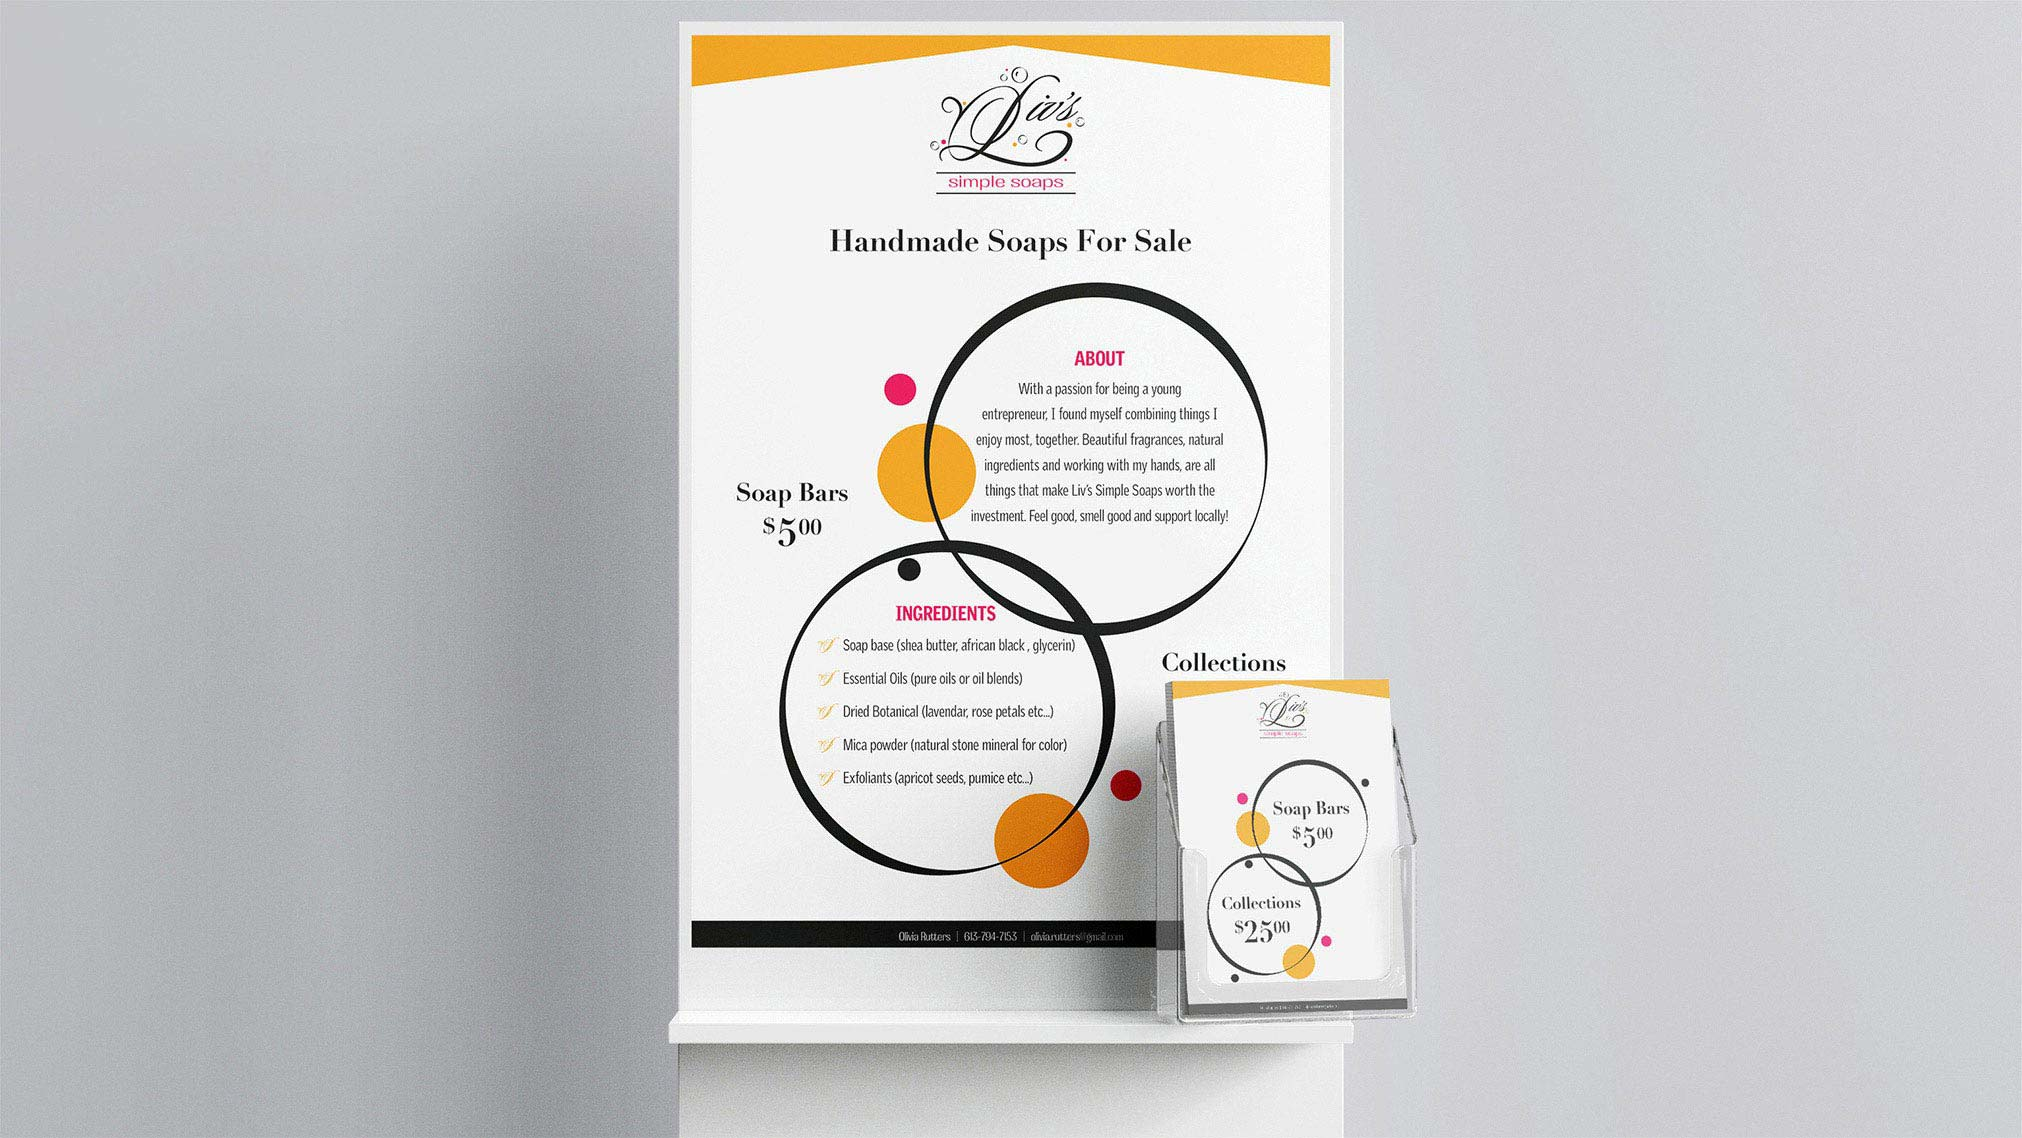 The client needed a logo design for their new small soap-making business. The young entrepreneur wanted something that was playful and elegant to share her personality through the design. A poster and business card was designed for distribution purposes.